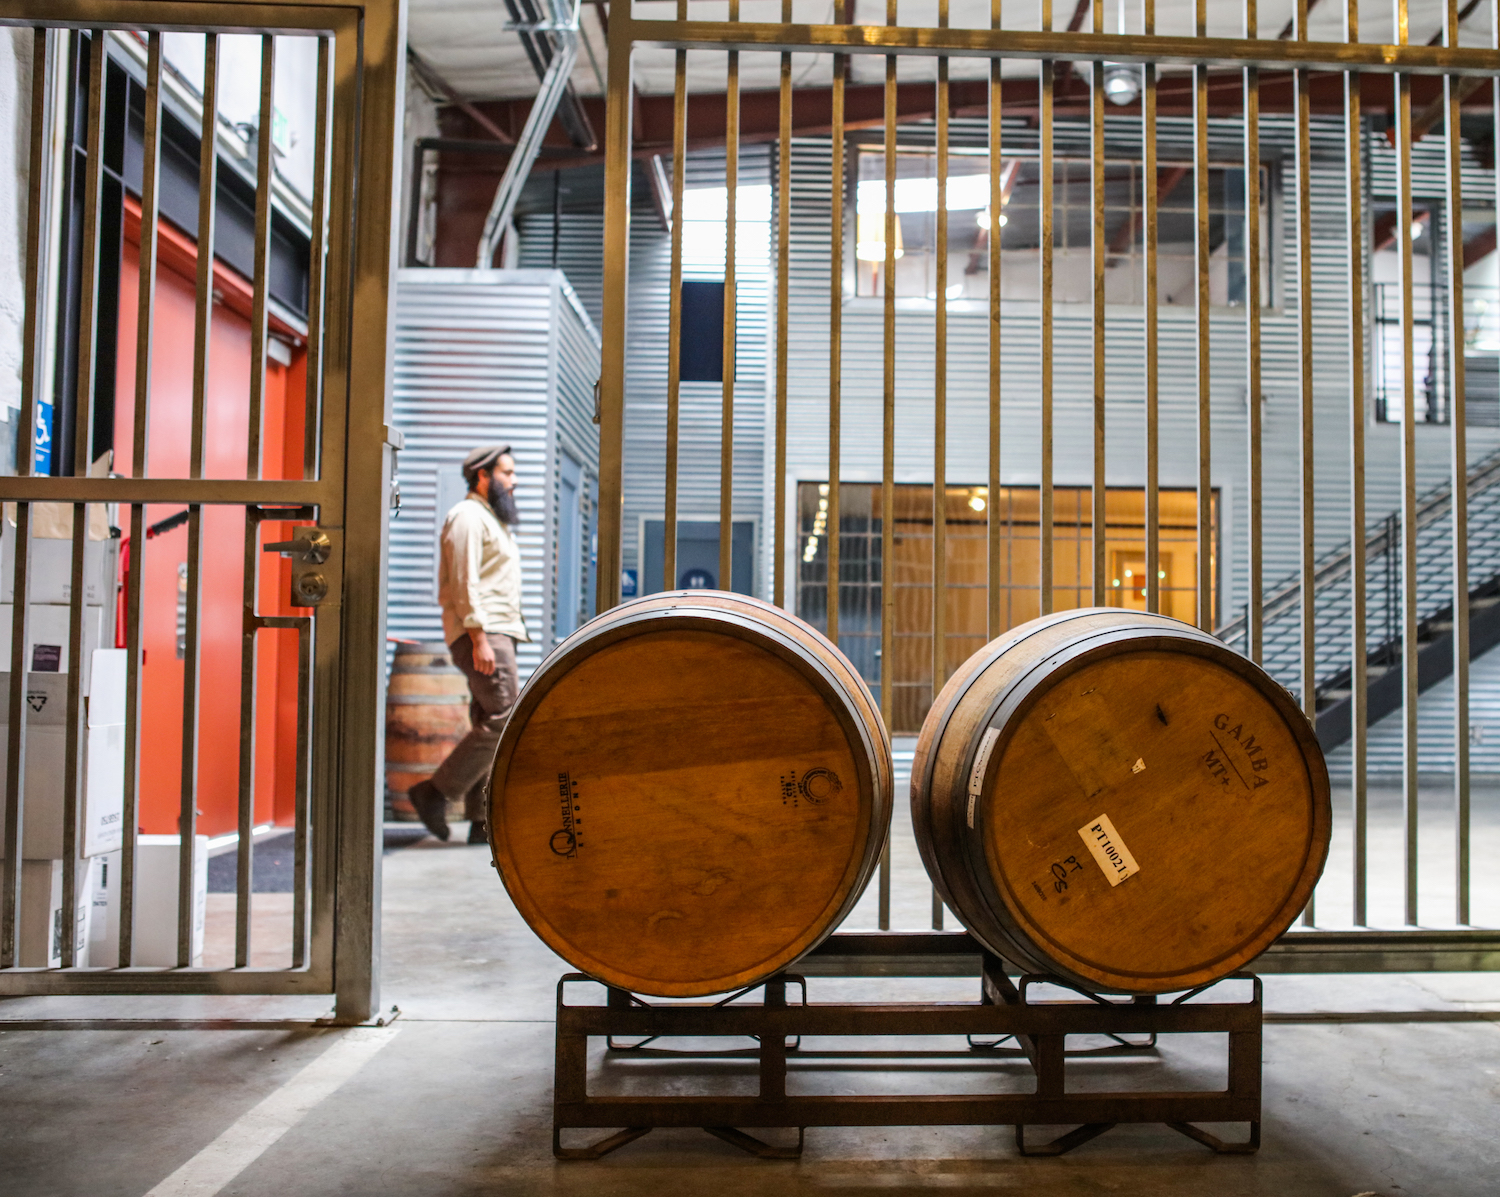 Covenant, wines, kosher wines, wine barrels, winery, Berkeley, California, The Press